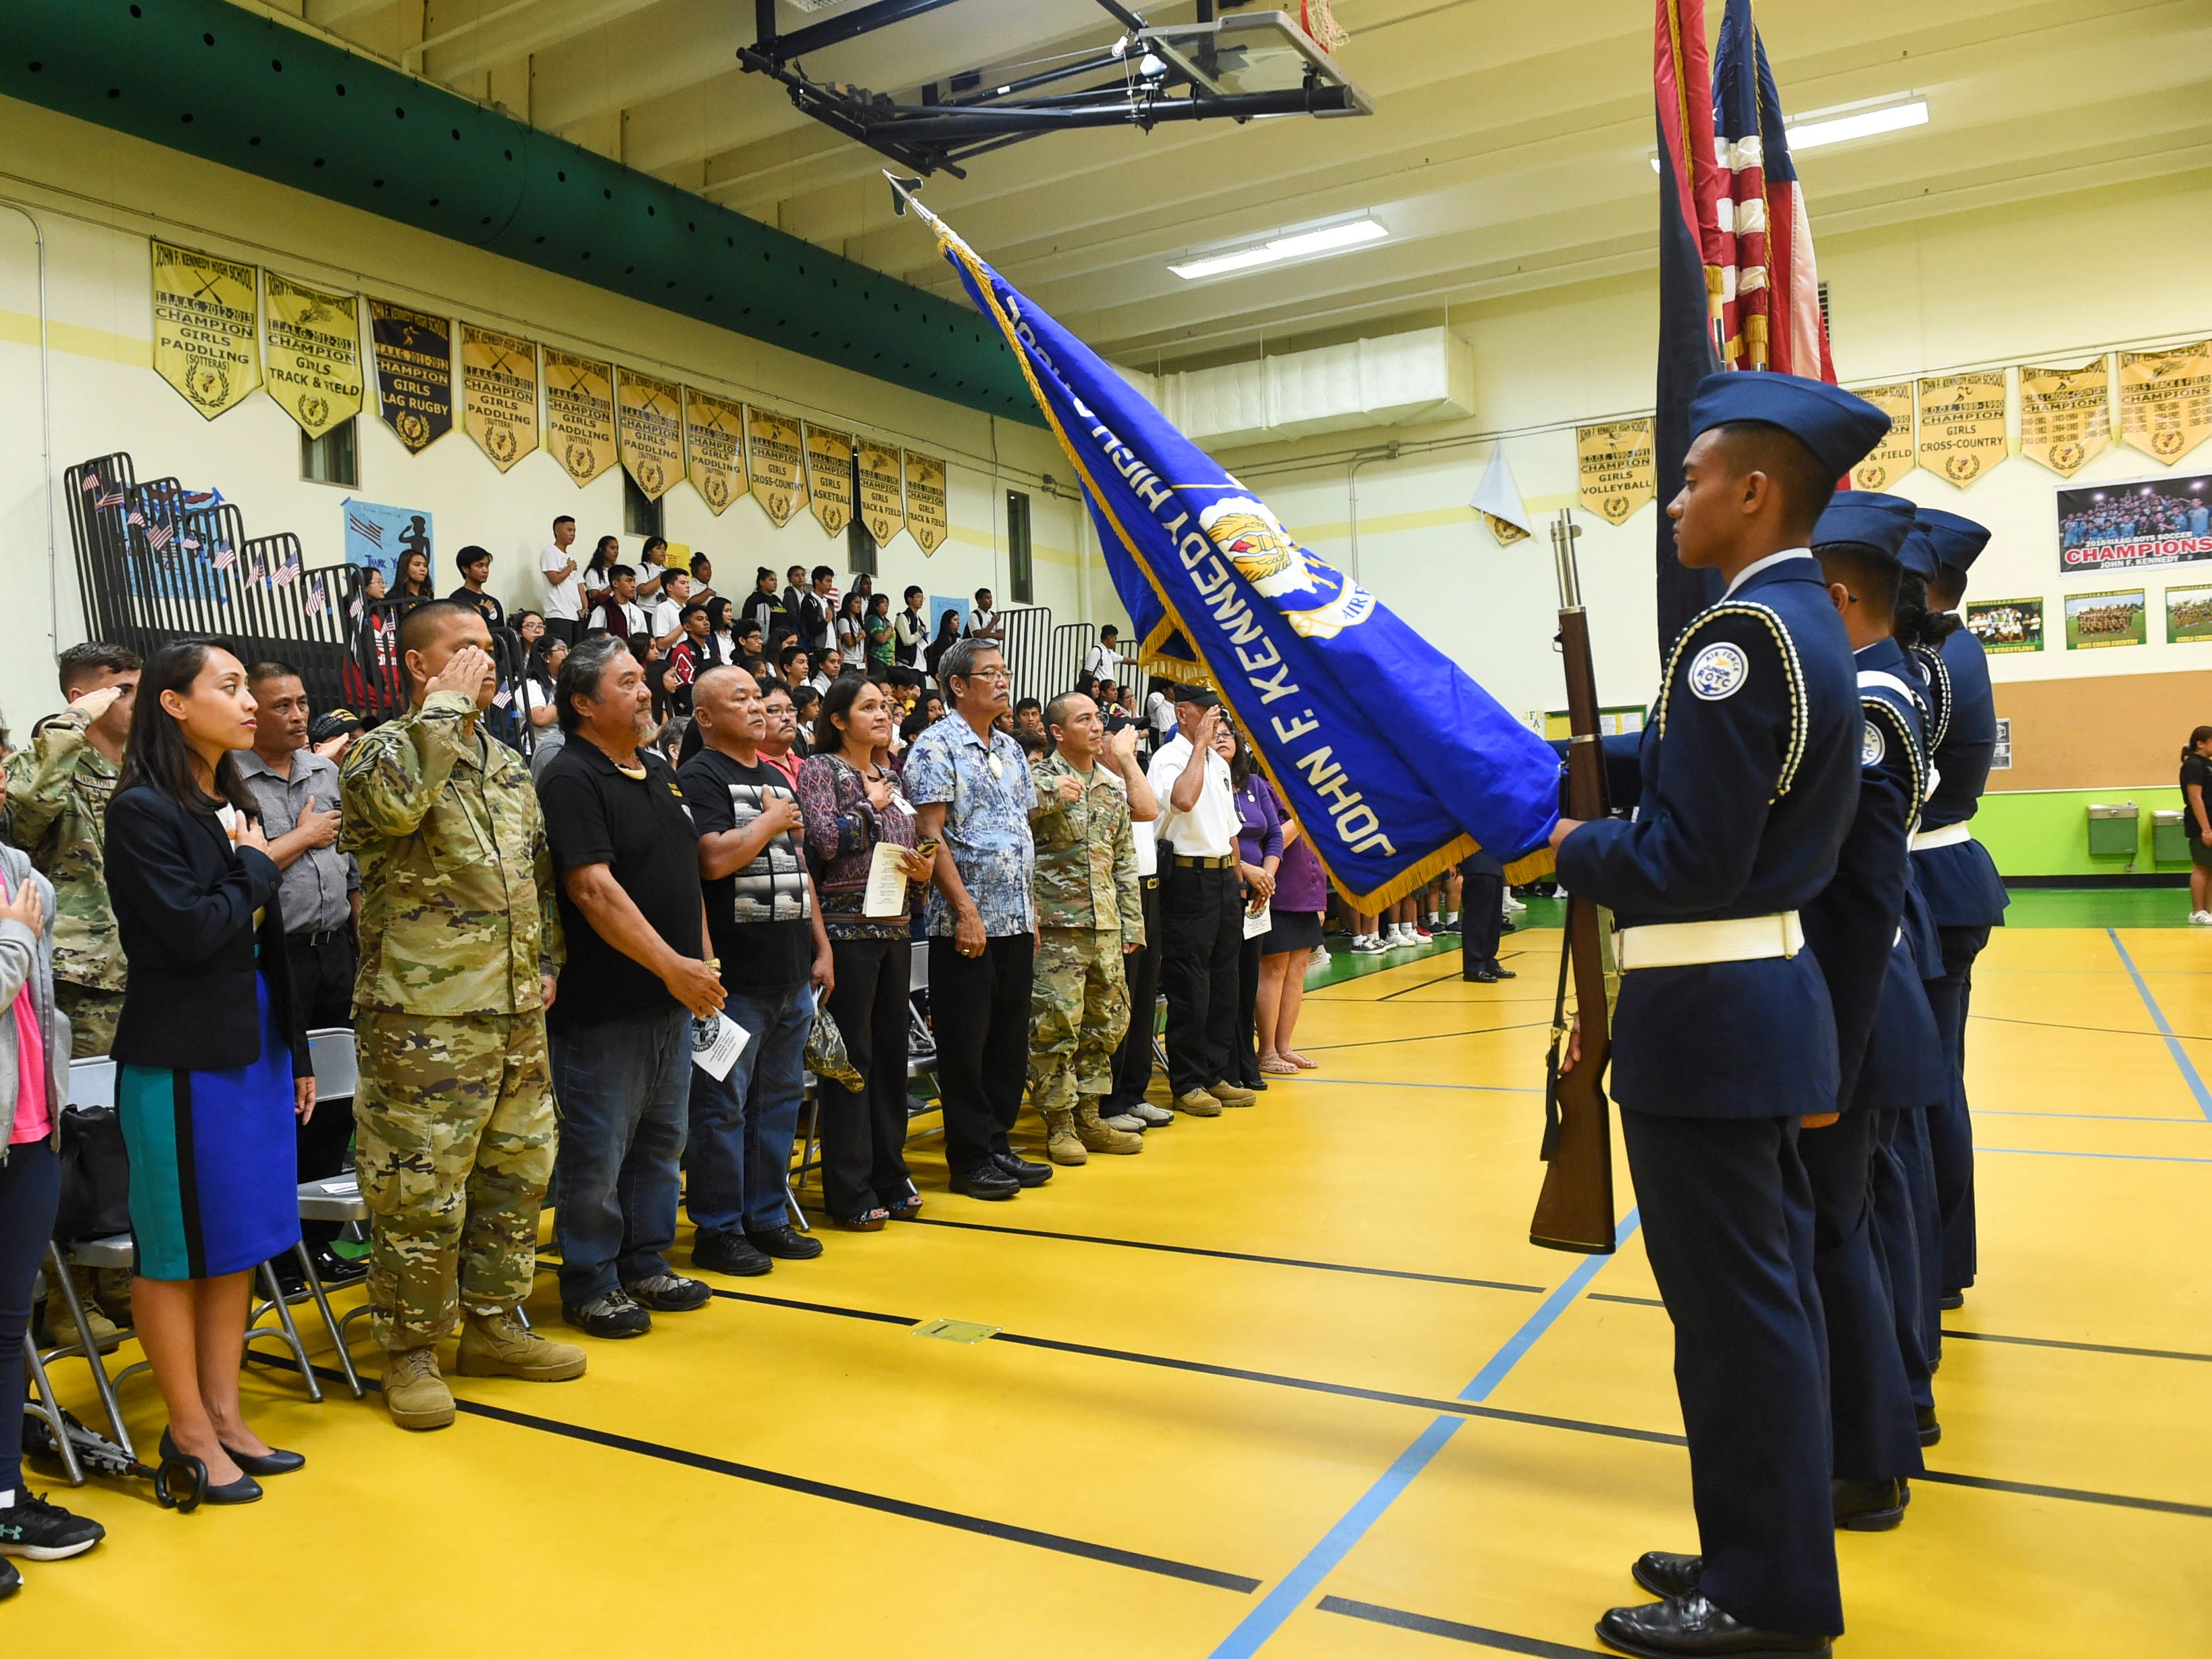 Veterans were honored during John F. Kennedy High School's Veterans Recognition Ceremony in Tamuning, Nov. 9, 2018.